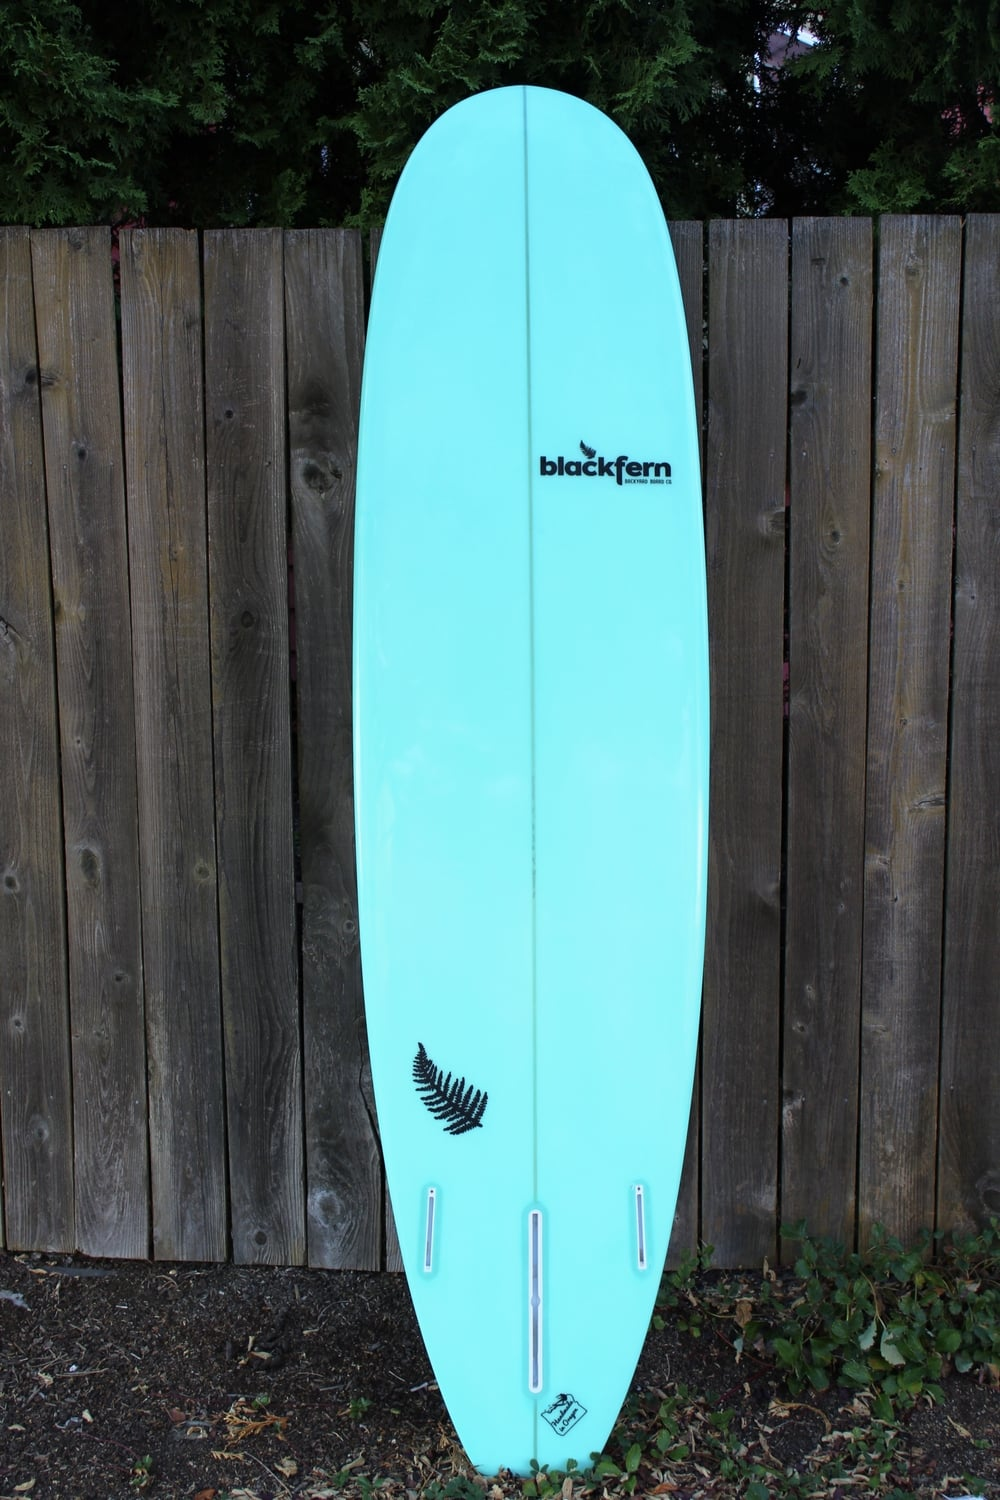 blackfern surfboards